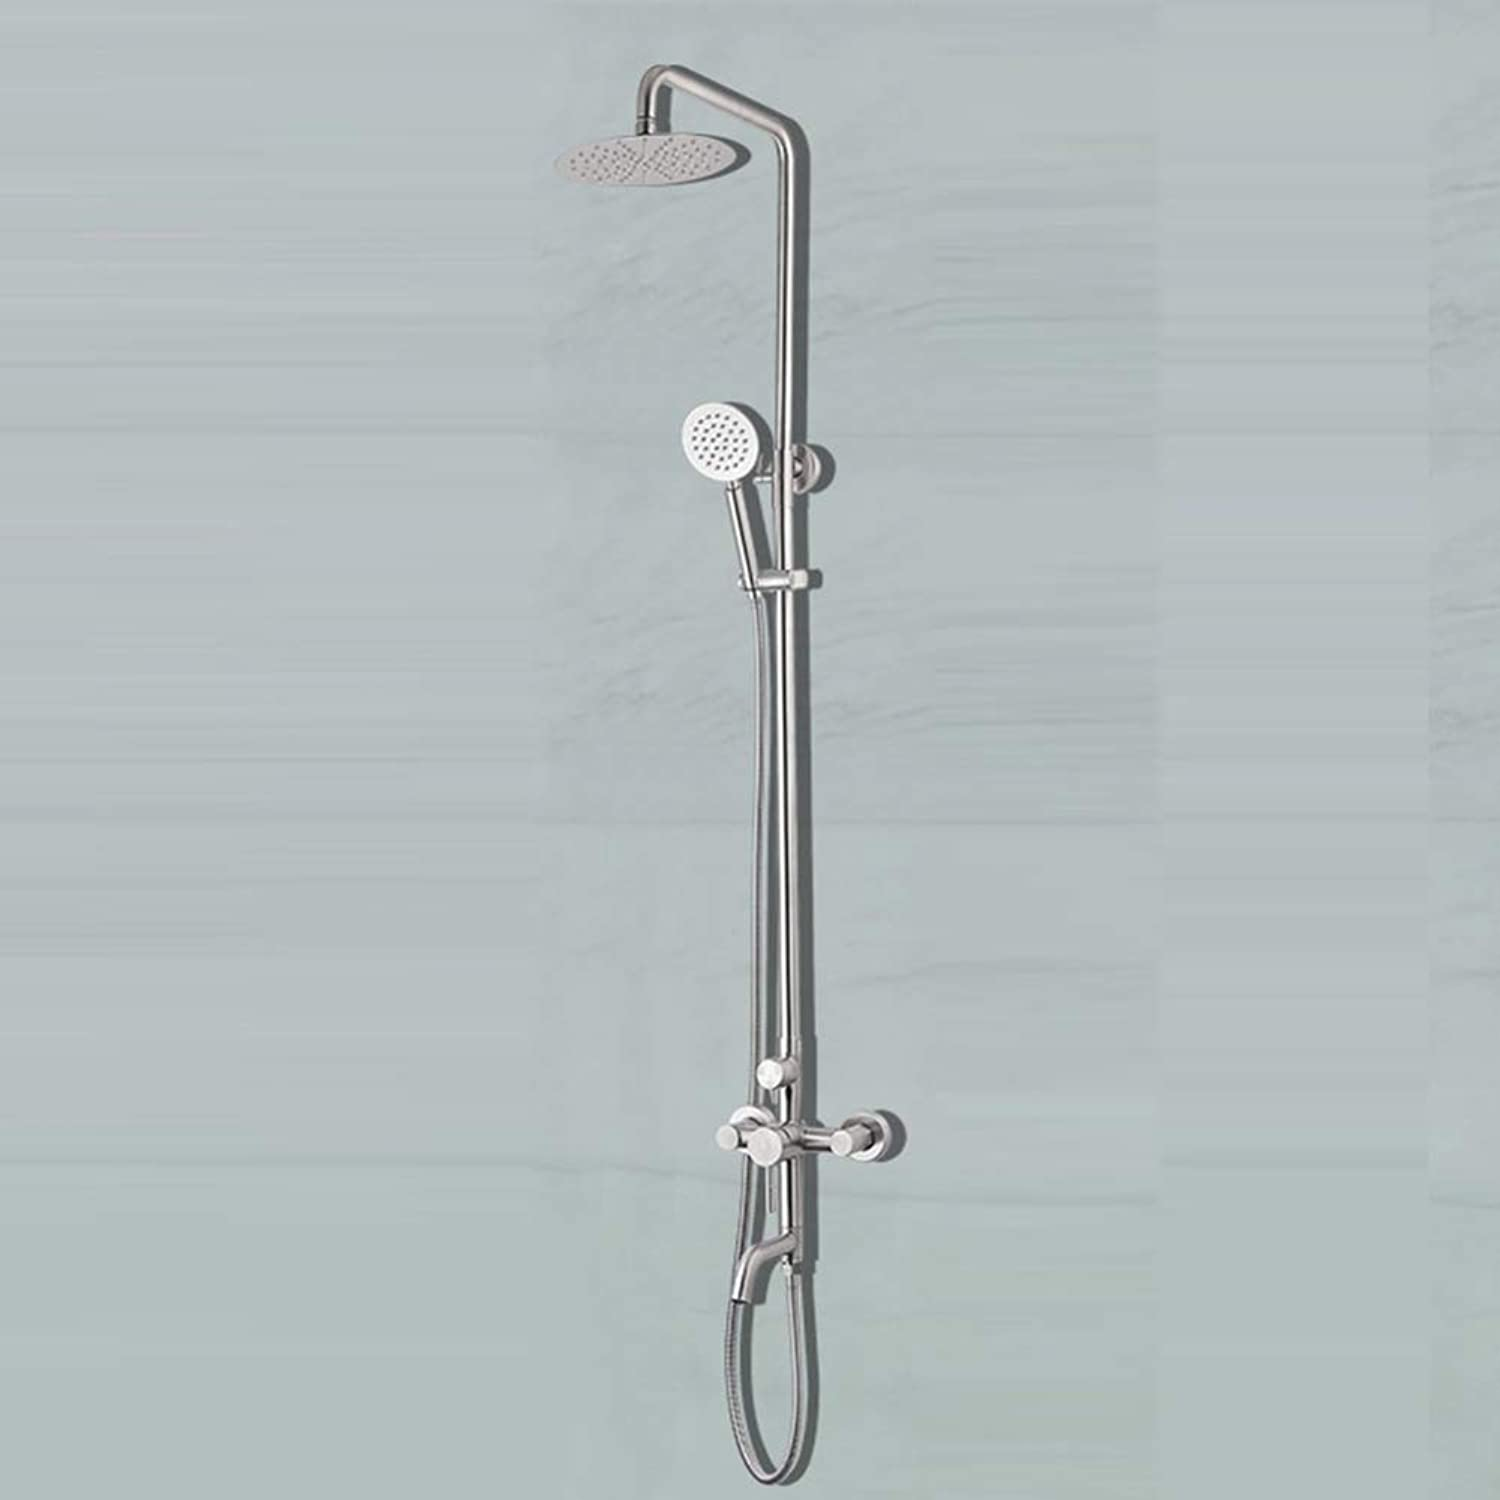 MPYStainless steel supercharged brushed shower set,Three-speed multi-function rain shower,Handheld shower